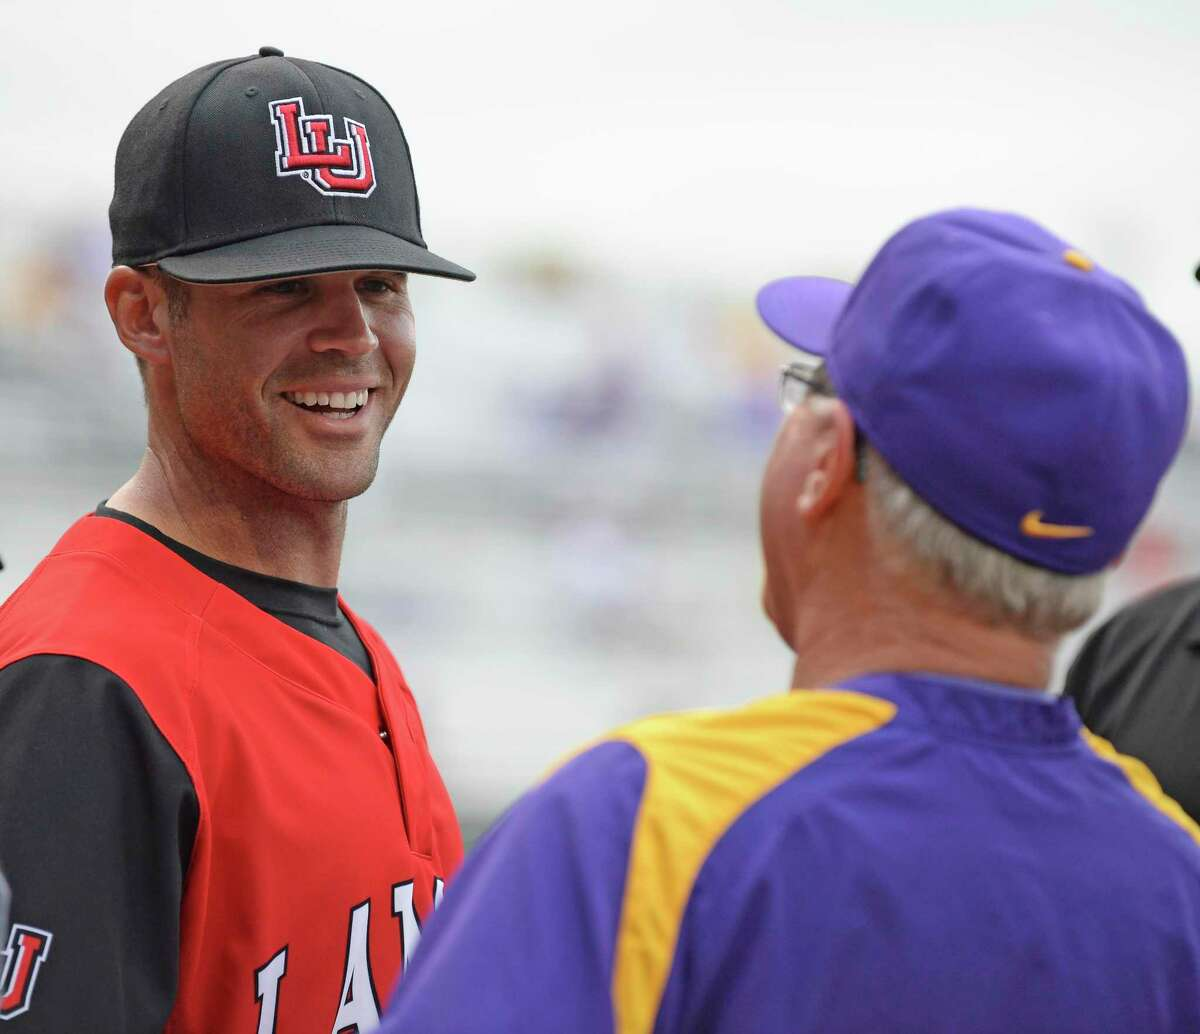 Former LSU volunteer coach and current Lamar head coach Will Davis, left, speaks with LSU head coach Paul Mainieri at home plate with the umpires before their teams compete, Tuesday, April 18, 2017, at LSU's Alex Box Stadium in Baton Rouge, La. Hilary Scheinuk/The Advocate